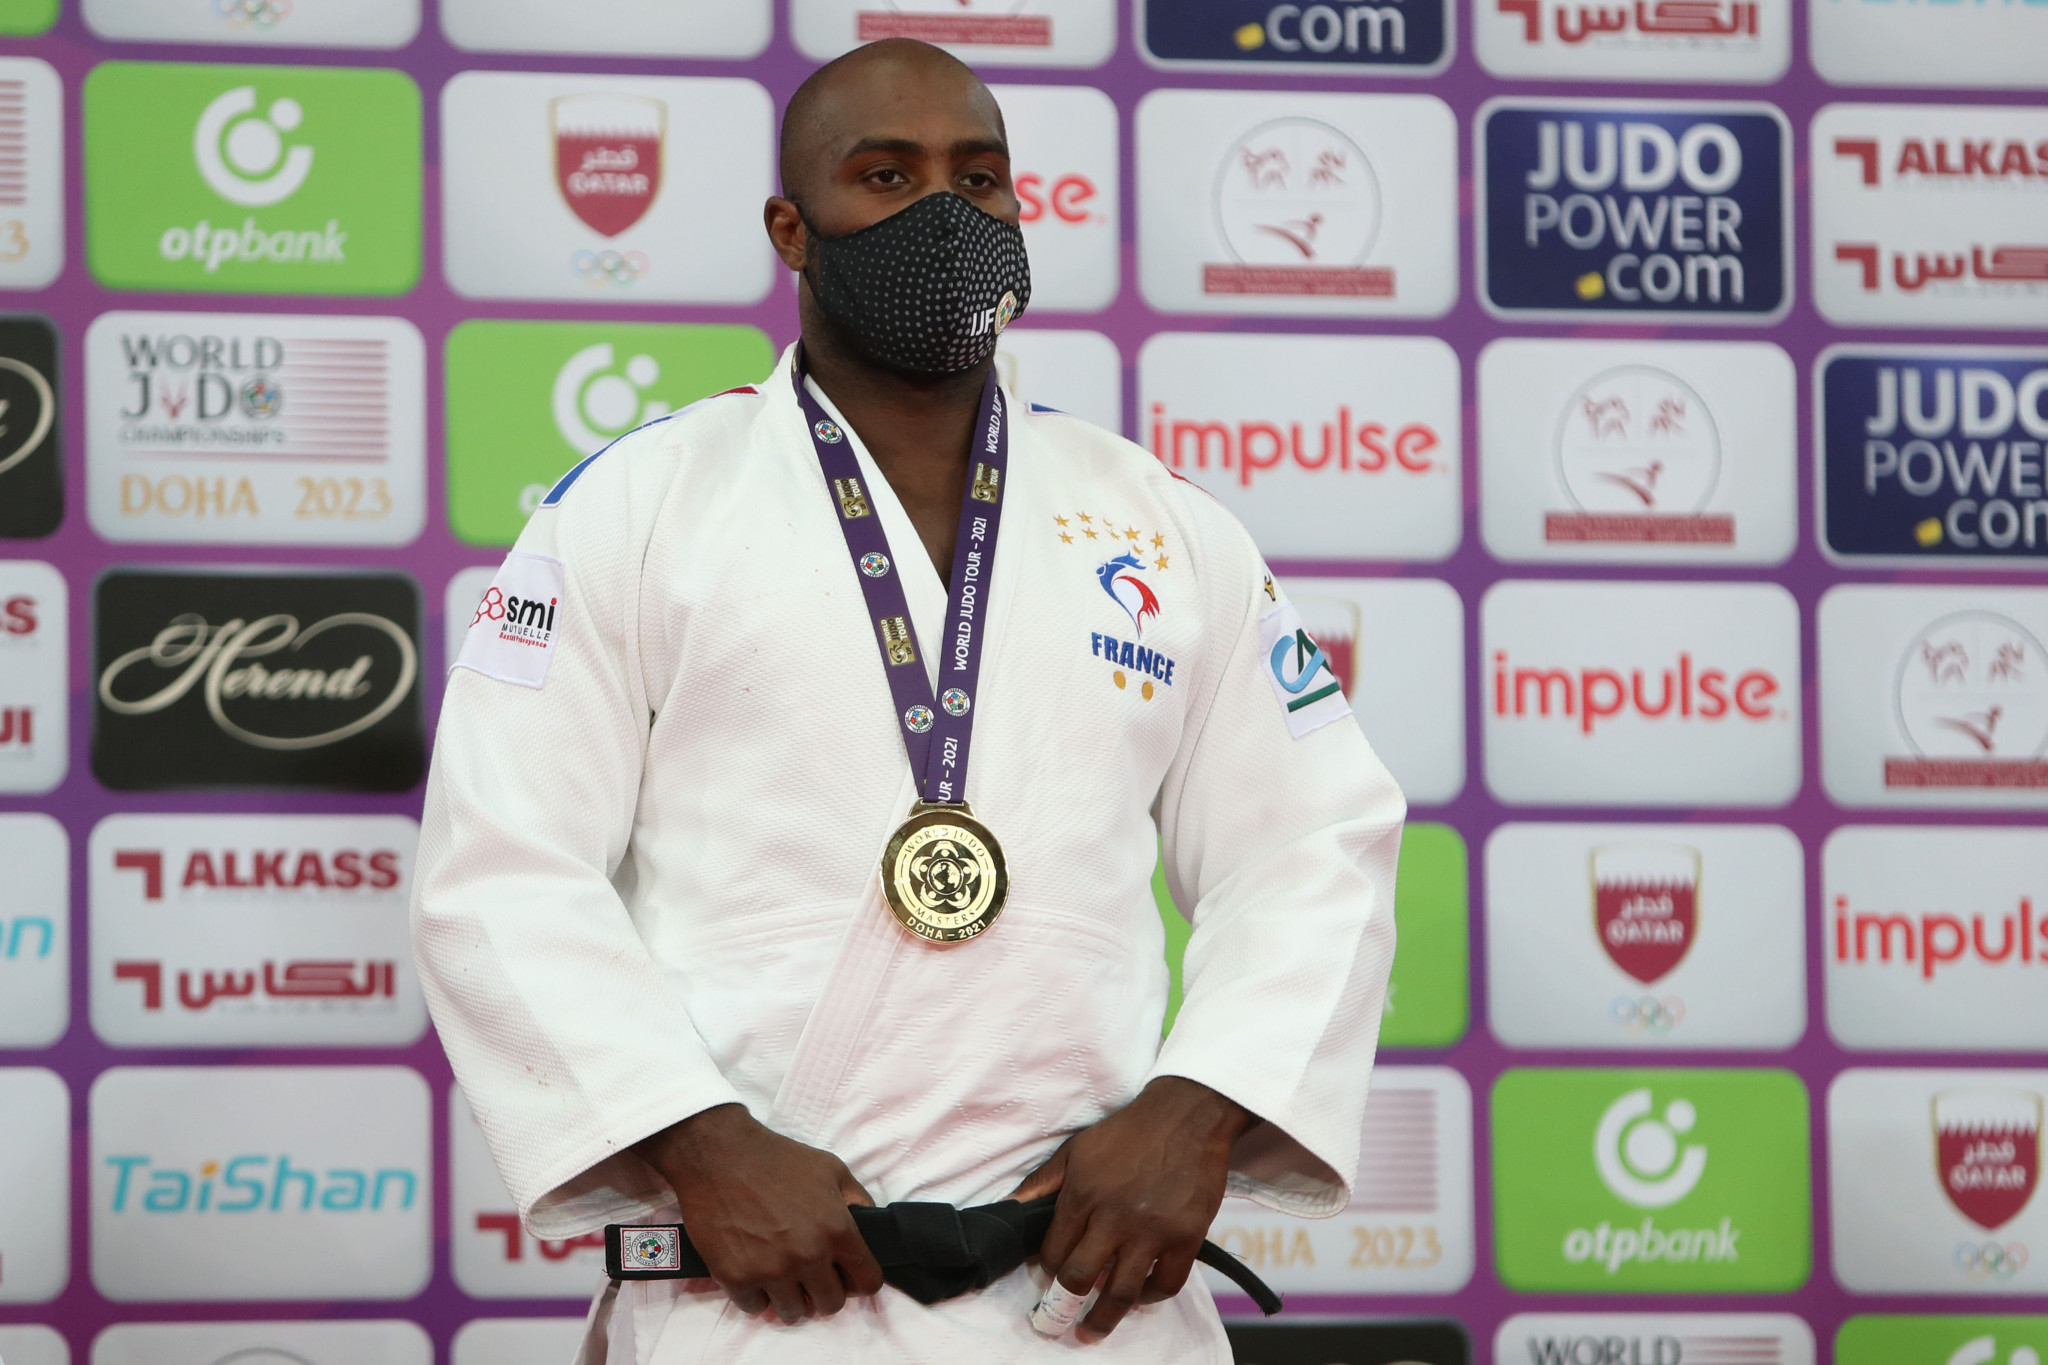 Teddy Riner won gold at the IJF World Judo Masters in Doha ©Getty Images